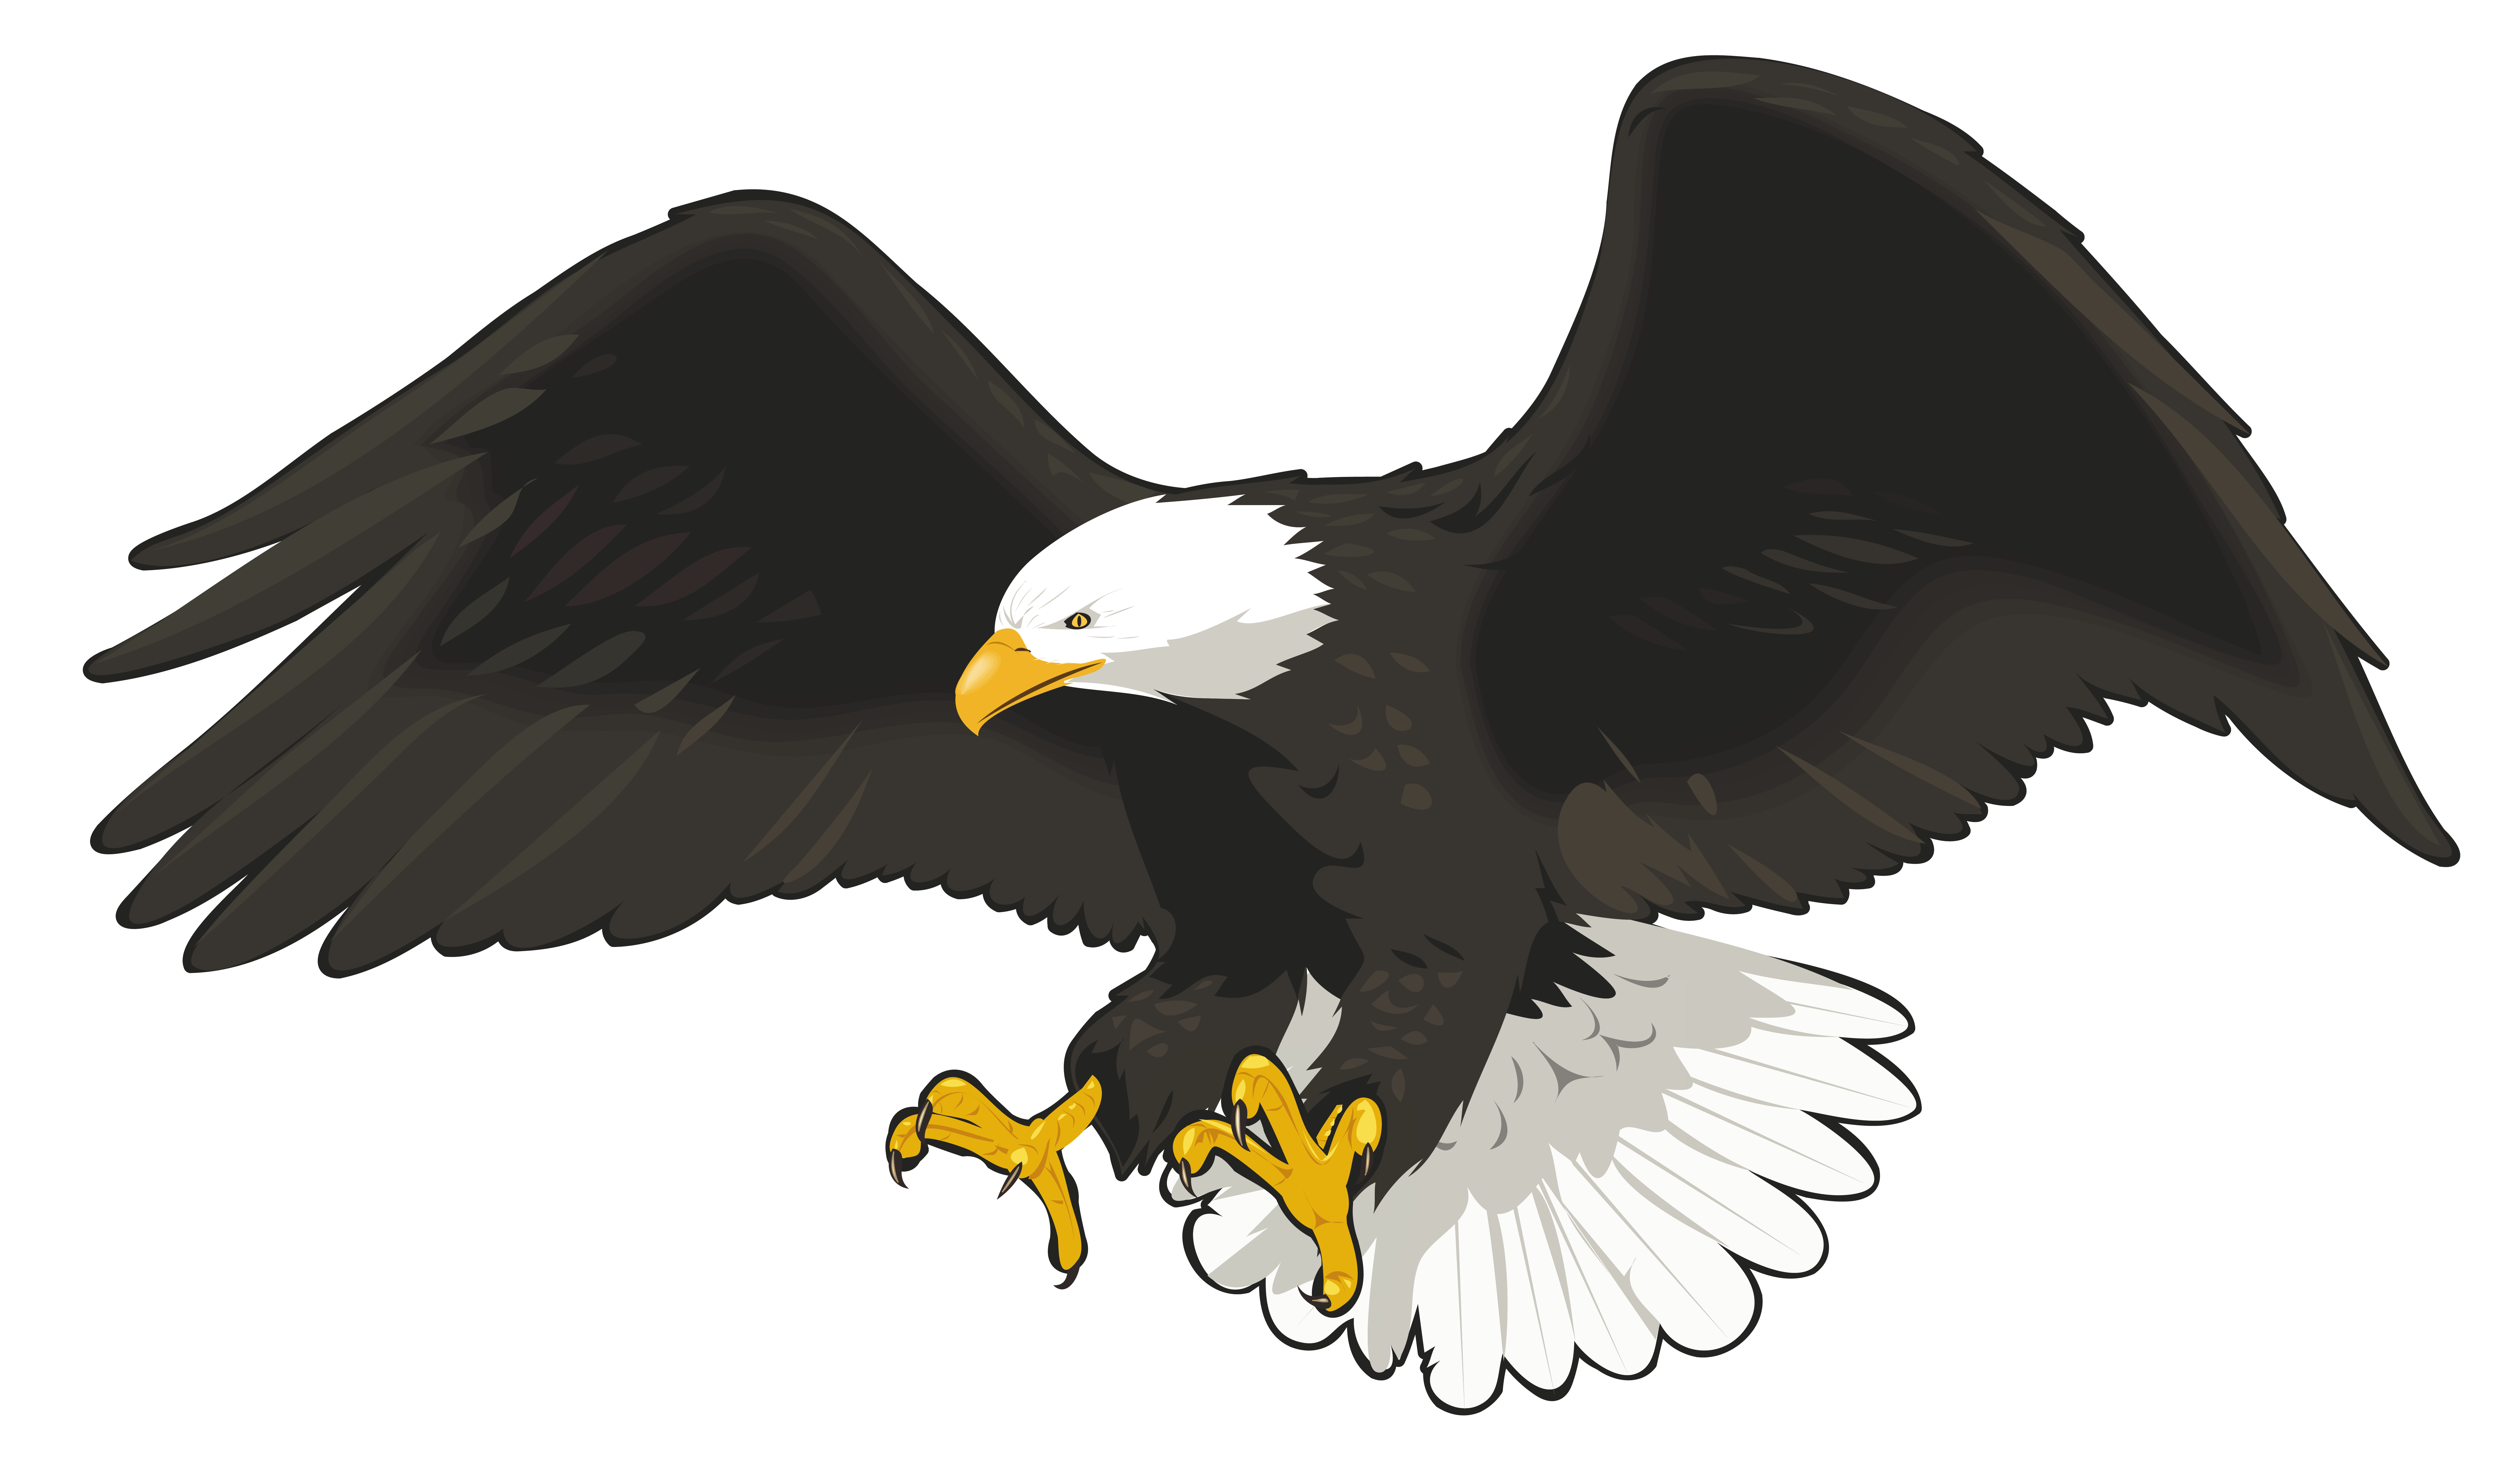 Eagle Png Png Clip Art Image Gallery Yopriceville High Quality Images And Transparent Png Free Clipart Clip Art Art Images Eagle Art